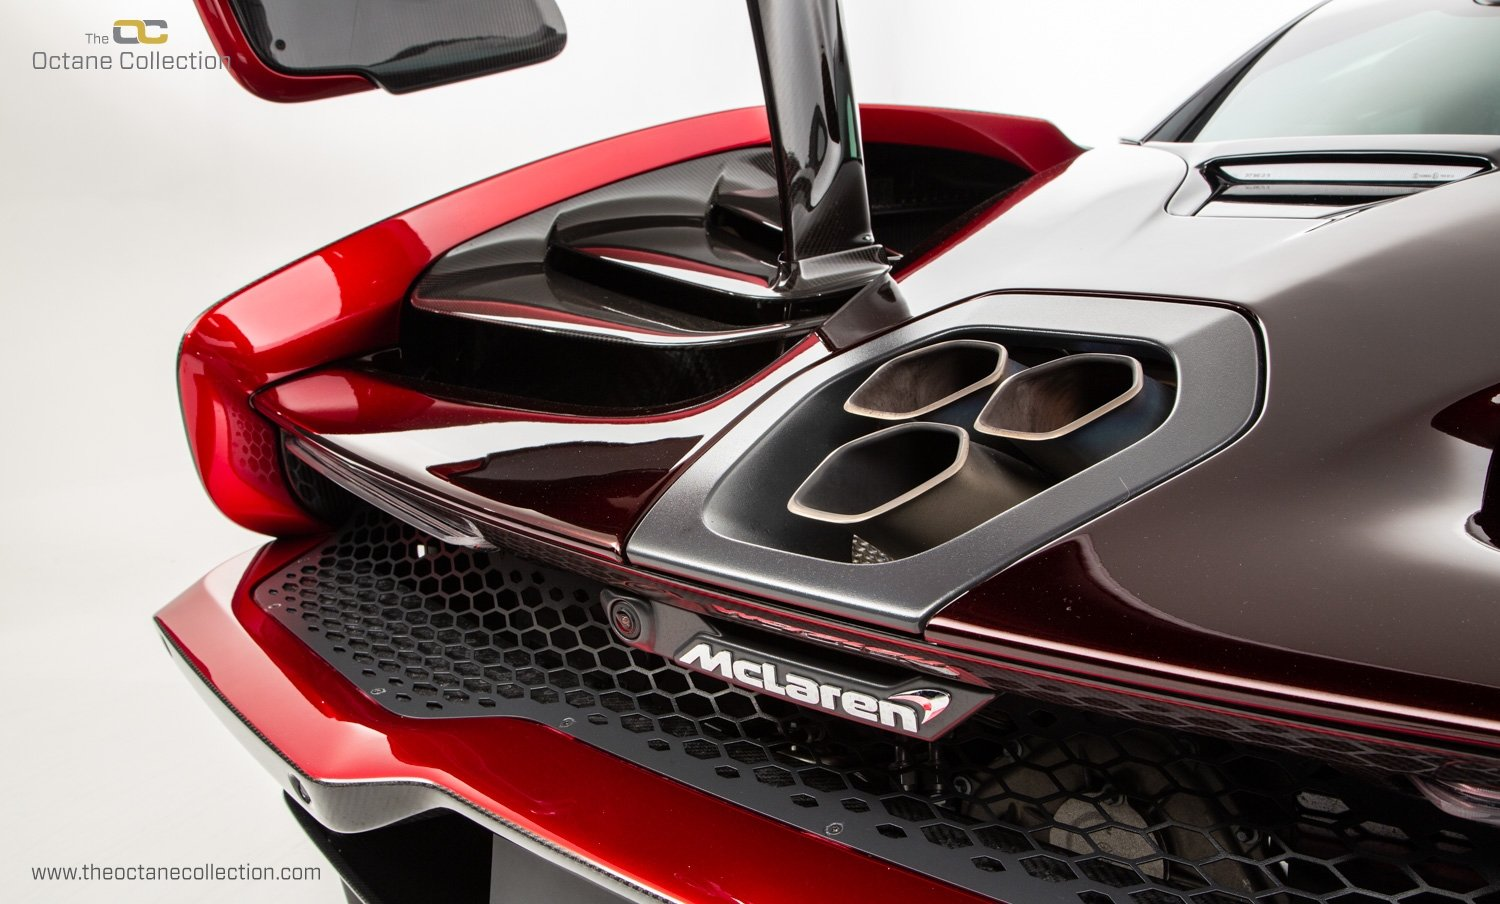 2019 MCLAREN SENNA // 1 OF 1 NERELLO RED // £115K+ MSO OPTIONS For Sale (picture 12 of 27)